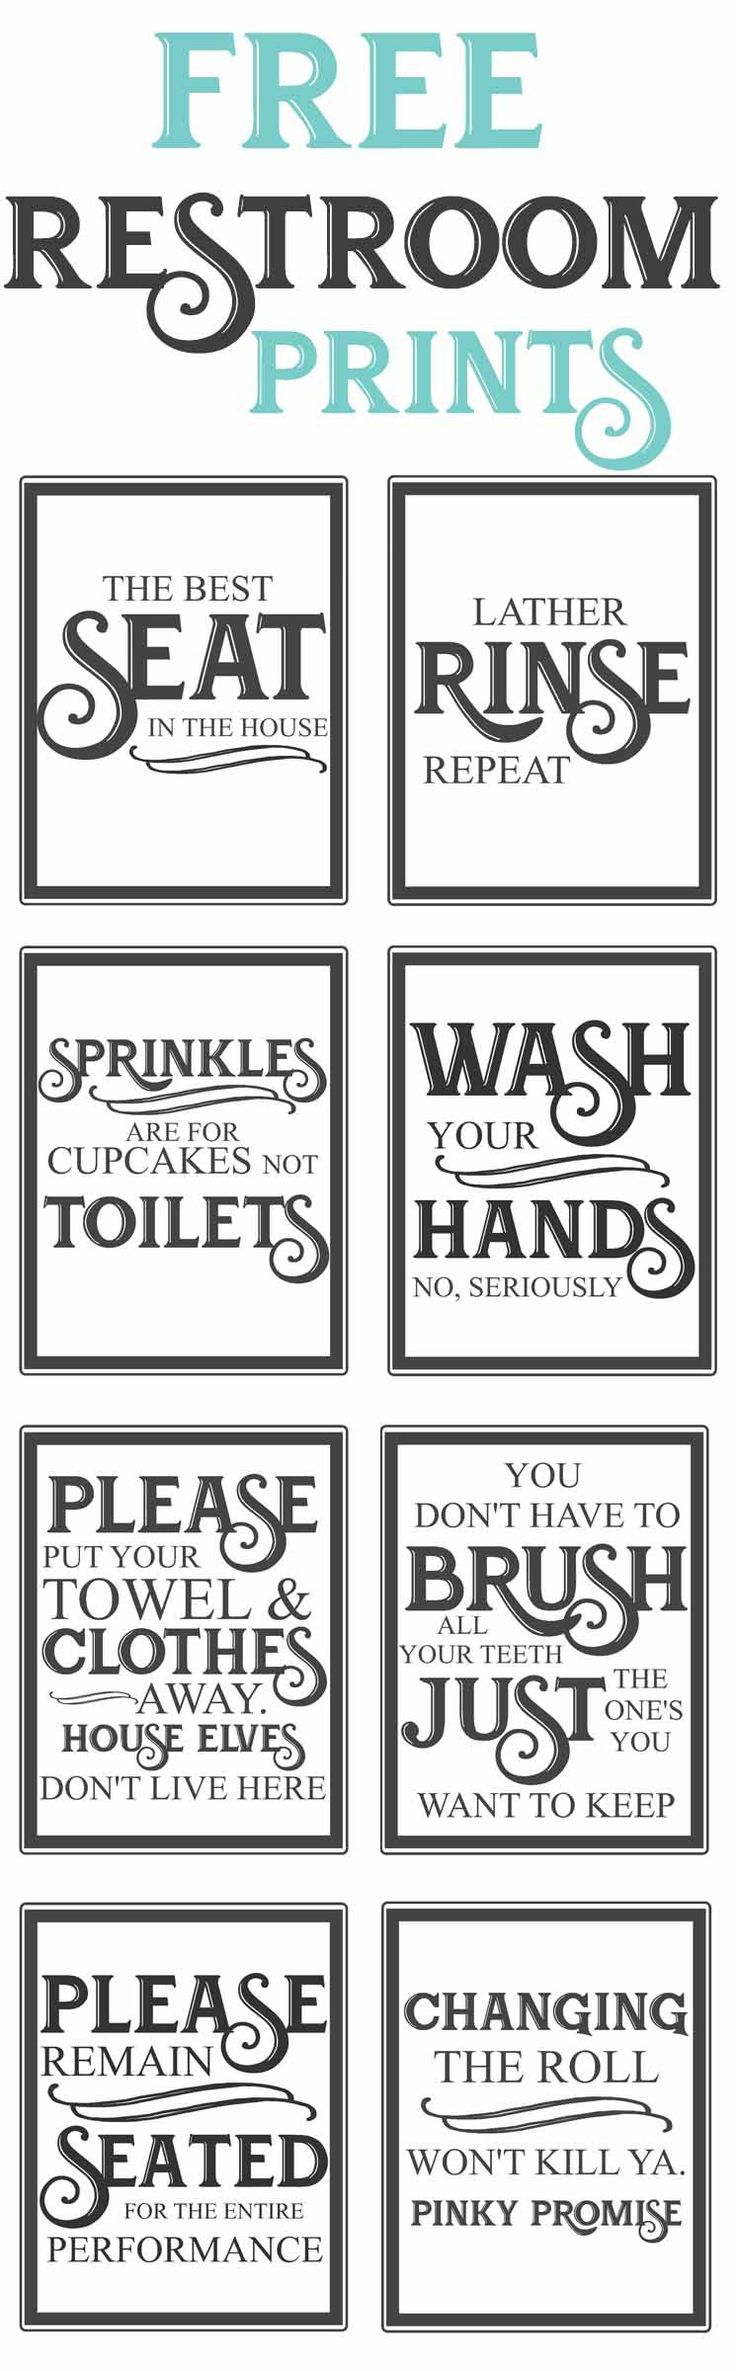 picture about Funny Bathroom Signs Printable identify Totally free Basic Rest room Printables Farmhouse Farmhouse